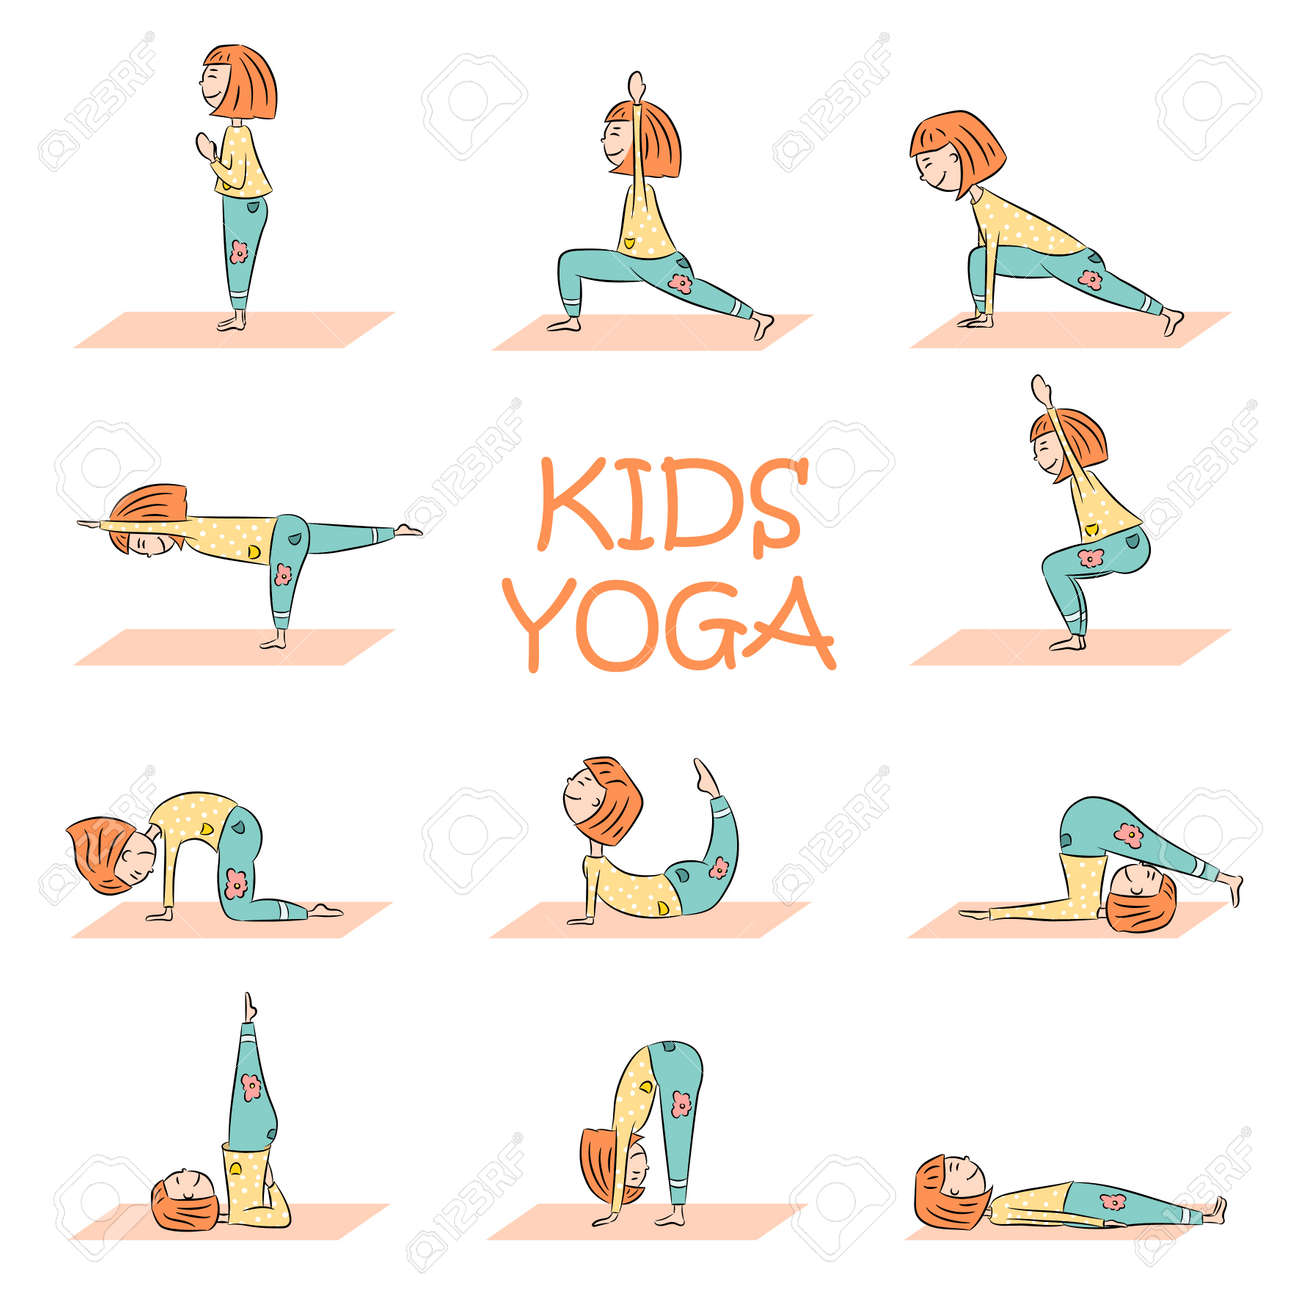 Kids Yoga Set With Cute Cartoon Girl In Different Yoga Poses Royalty Free Cliparts Vectors And Stock Illustration Image 108853333